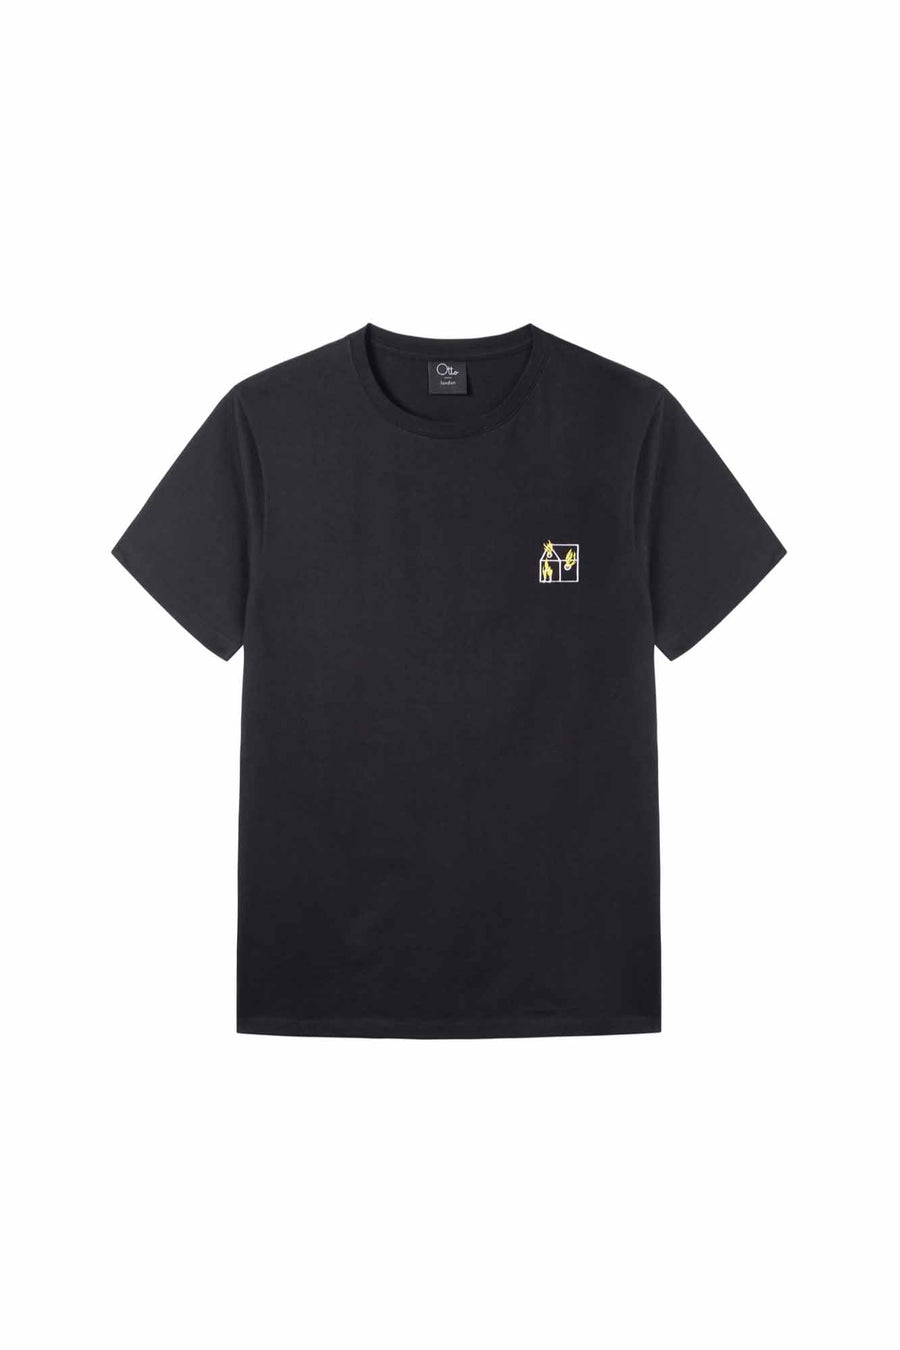 Team Crew Neck T-shirt in Black